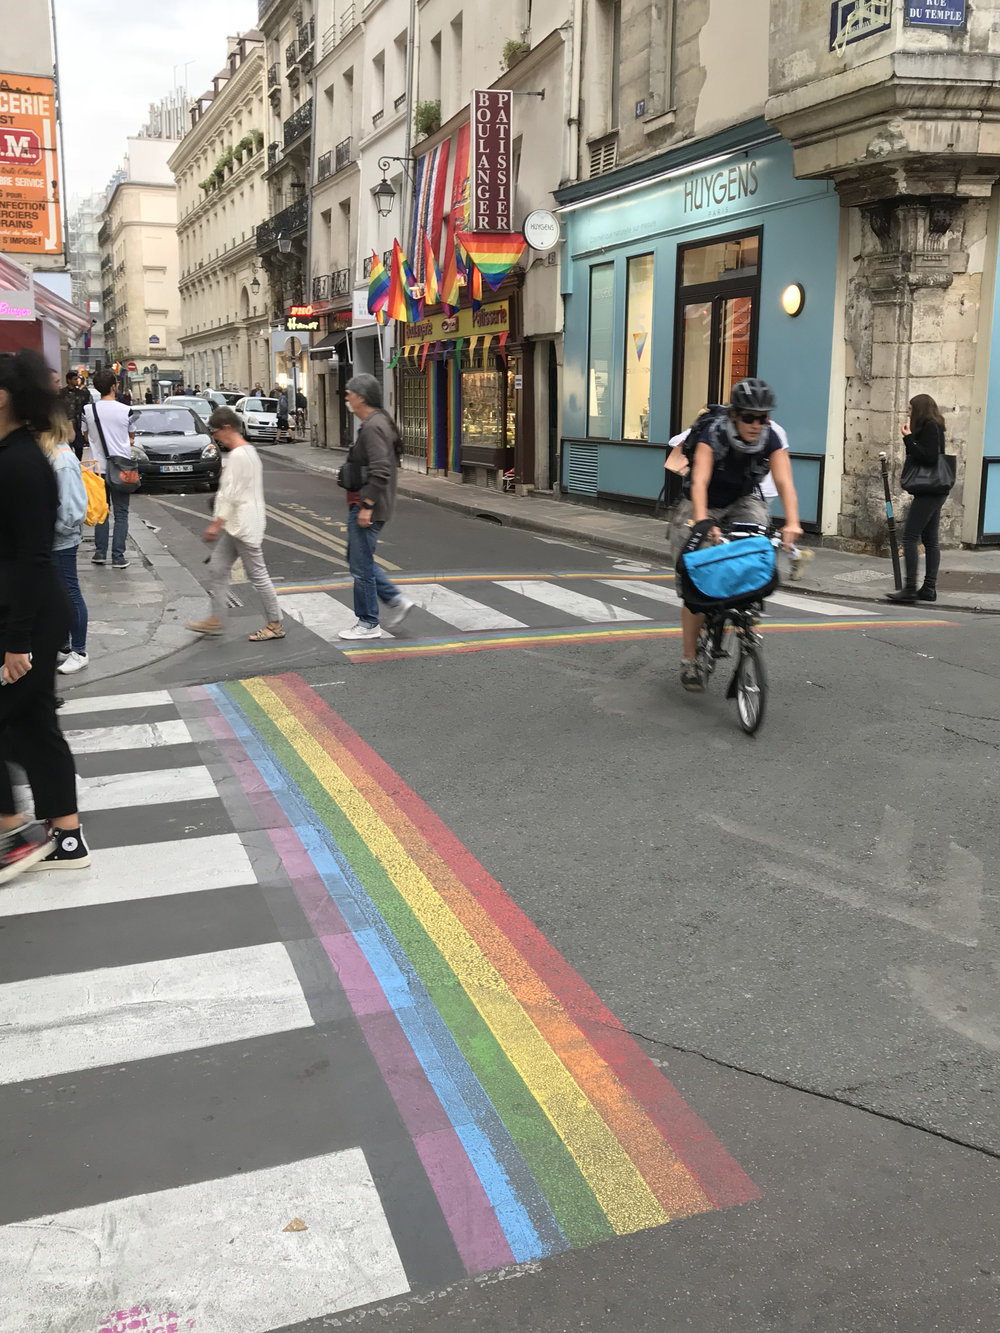 The Gay District